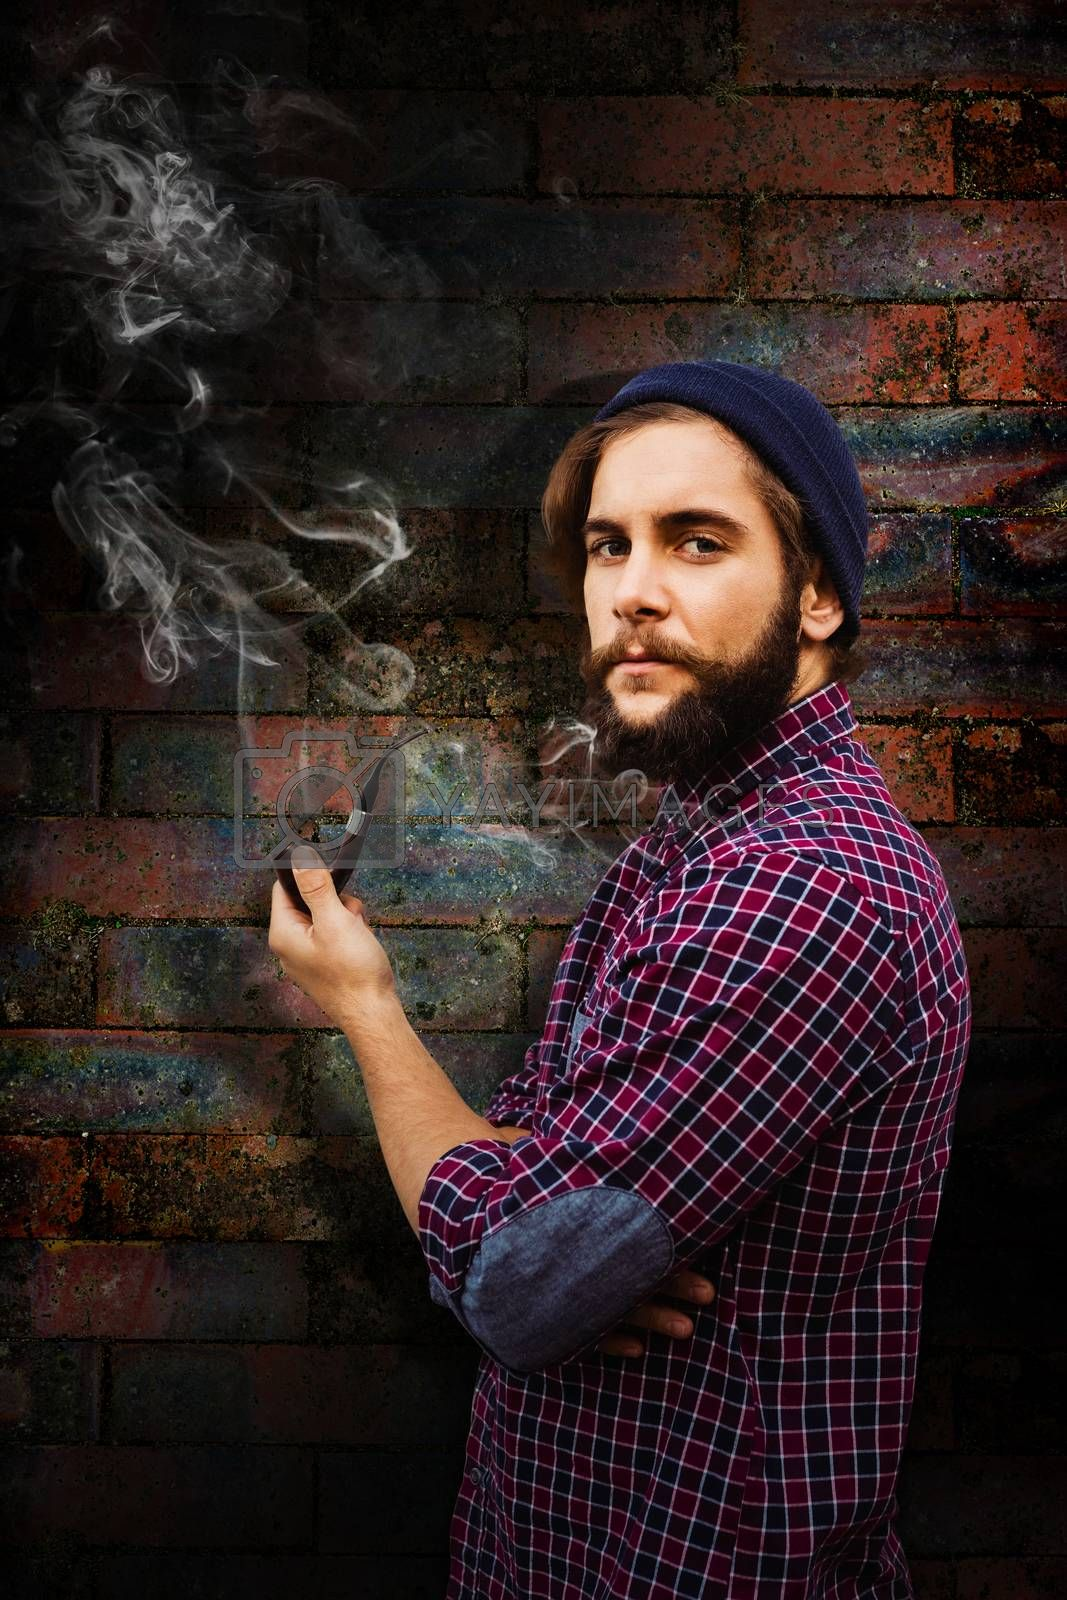 Side view of hipster holding smoking pipe against texture of bricks wall